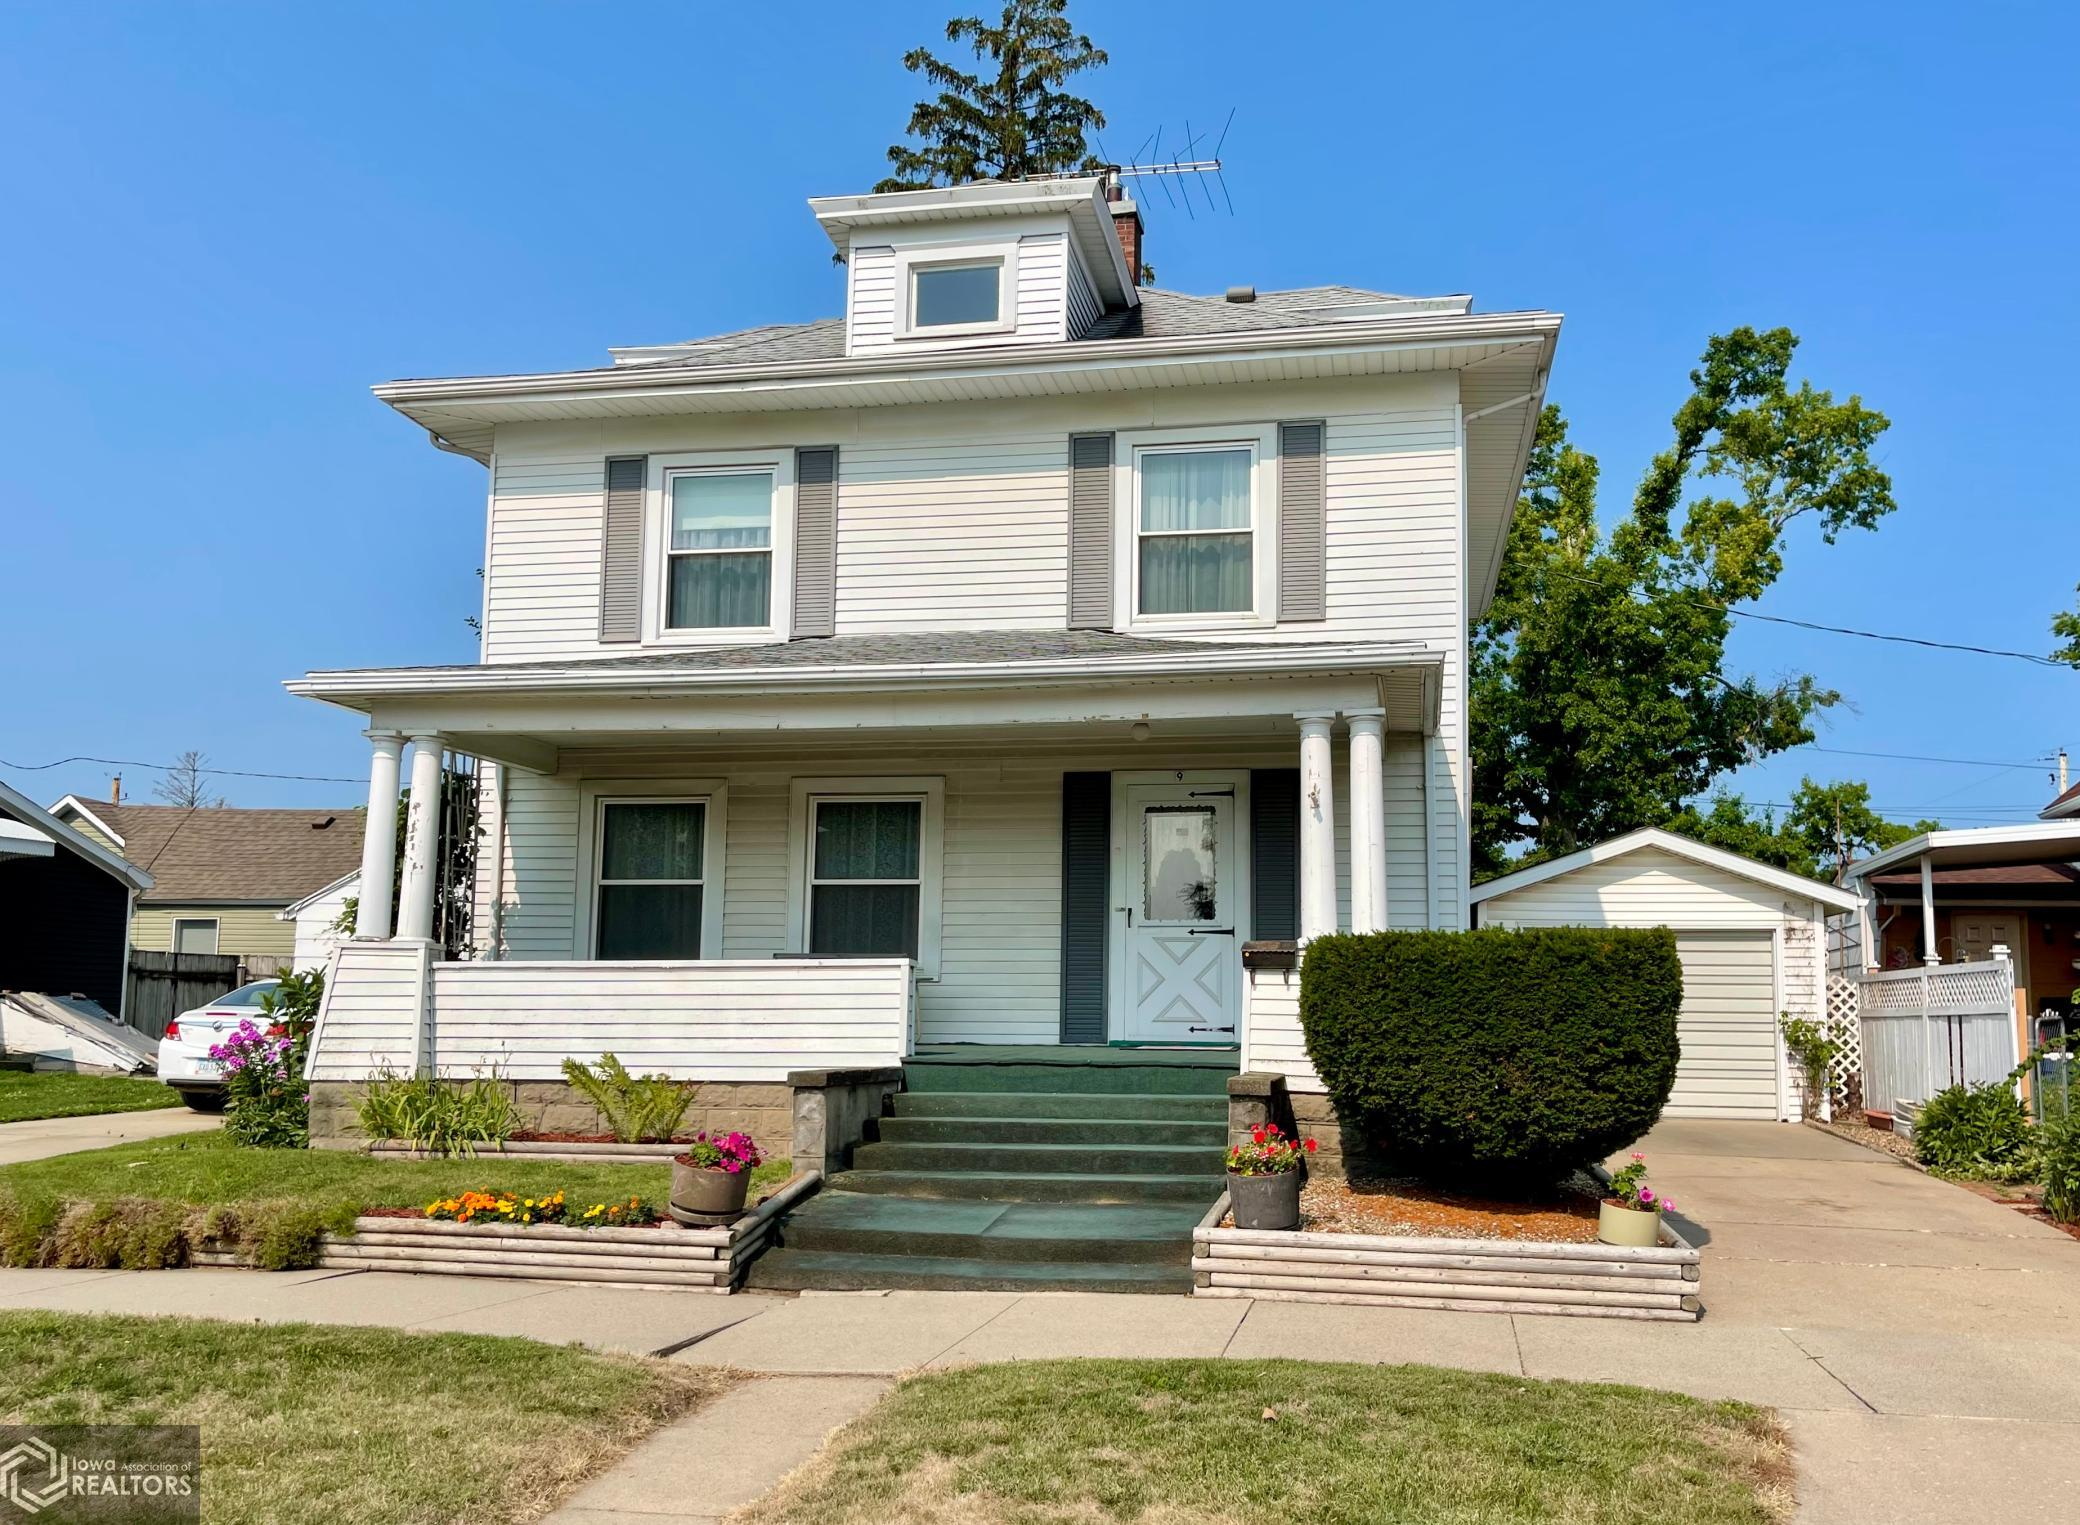 9 7th, Marshalltown, Iowa 50158-3361, 3 Bedrooms Bedrooms, ,1 BathroomBathrooms,Single Family,For Sale,7th,6027504